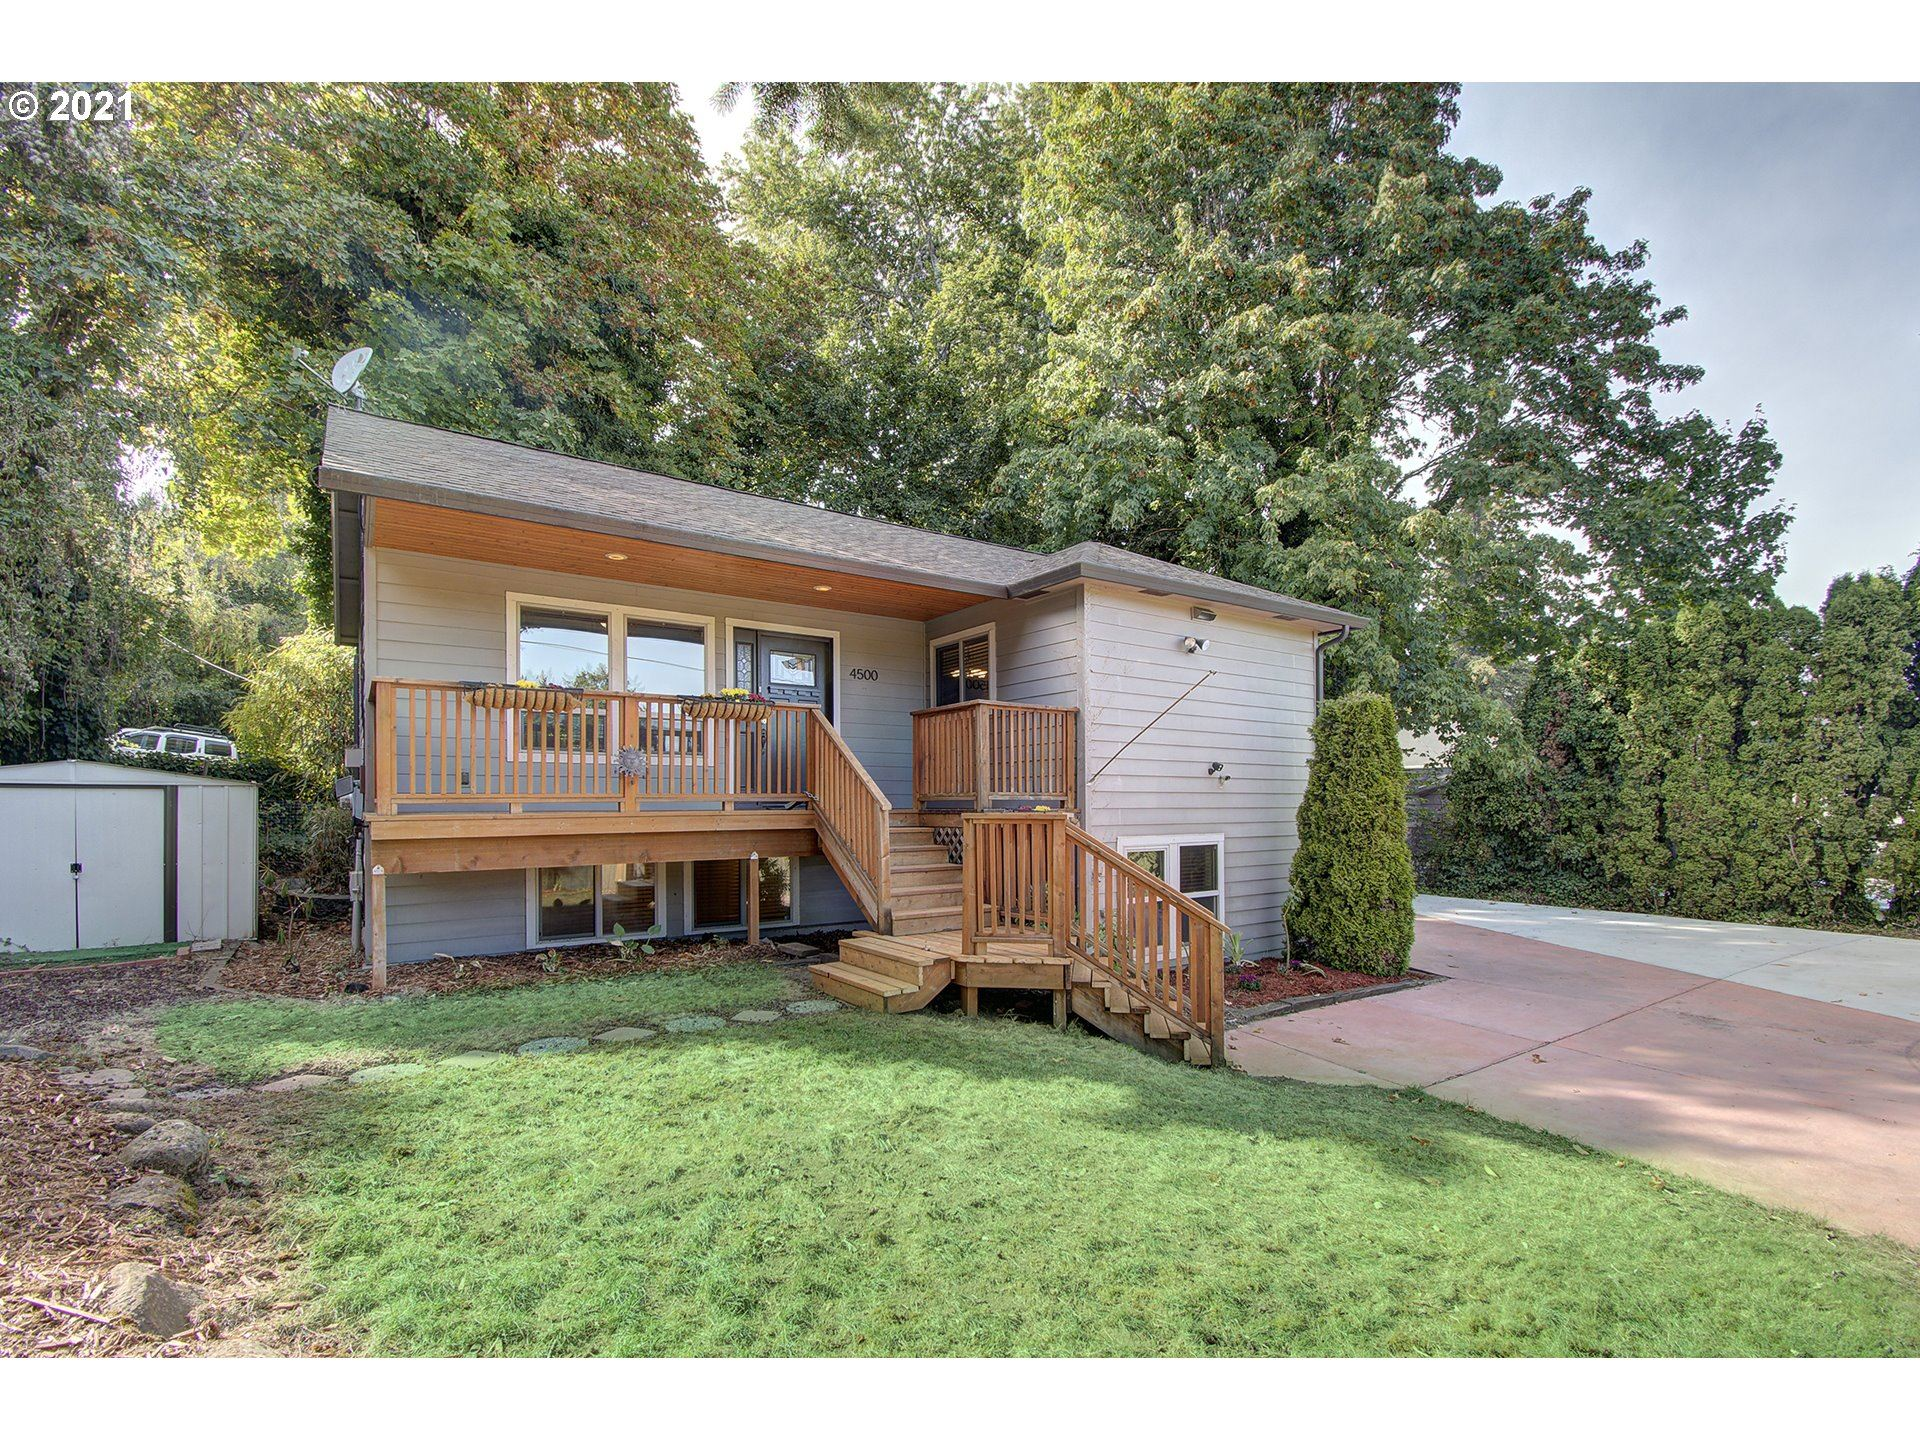 4500 PACIFIC AVE, Vancouver, WA 98663 - MLS#: 21619325